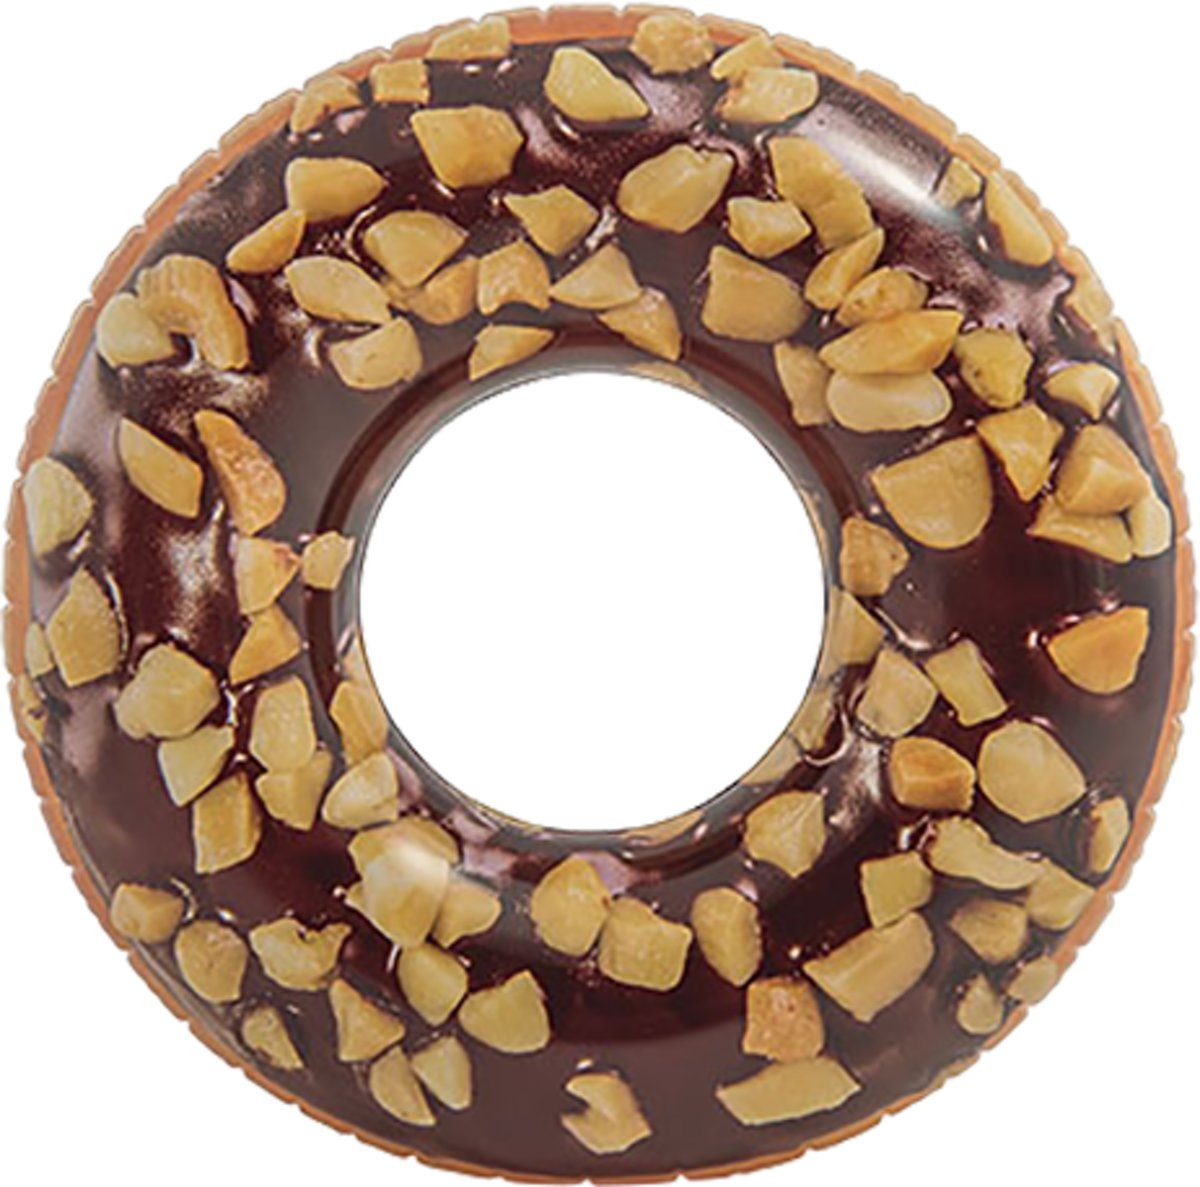 Chocolate donut tube